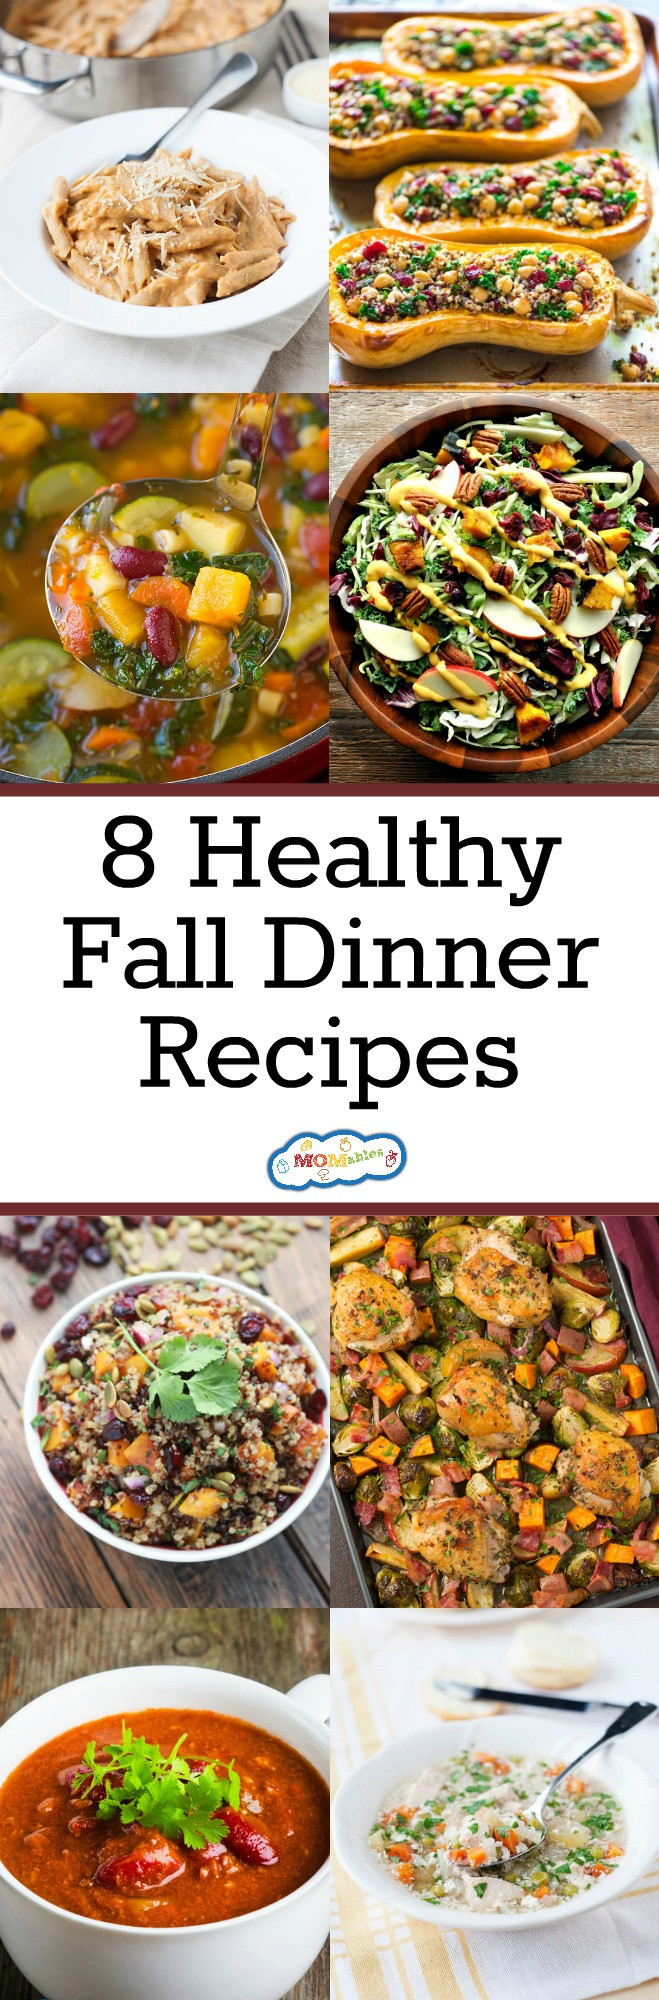 Fall Recipes Dinner  8 Healthy Fall Dinner Recipes MOMables Good Food